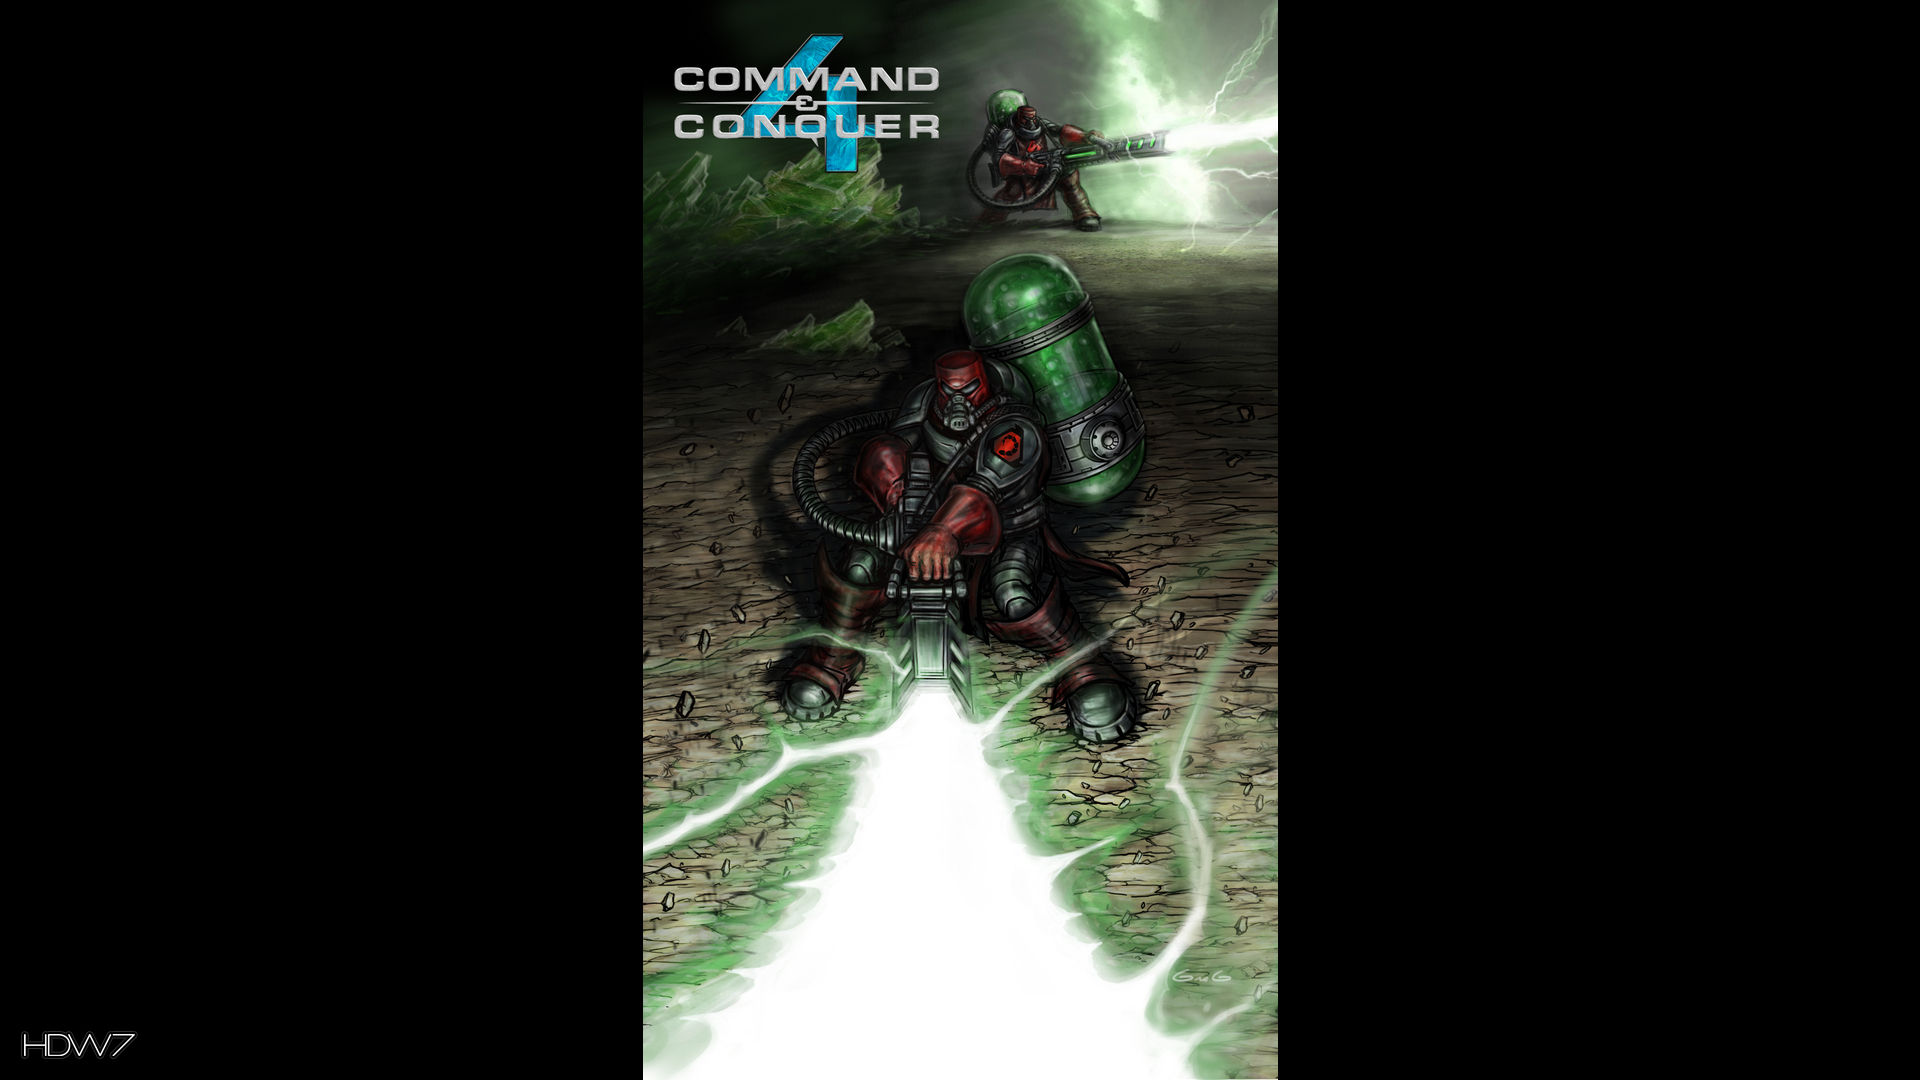 command and conquer 4 tiberium trooper widescreen hd wallpaper